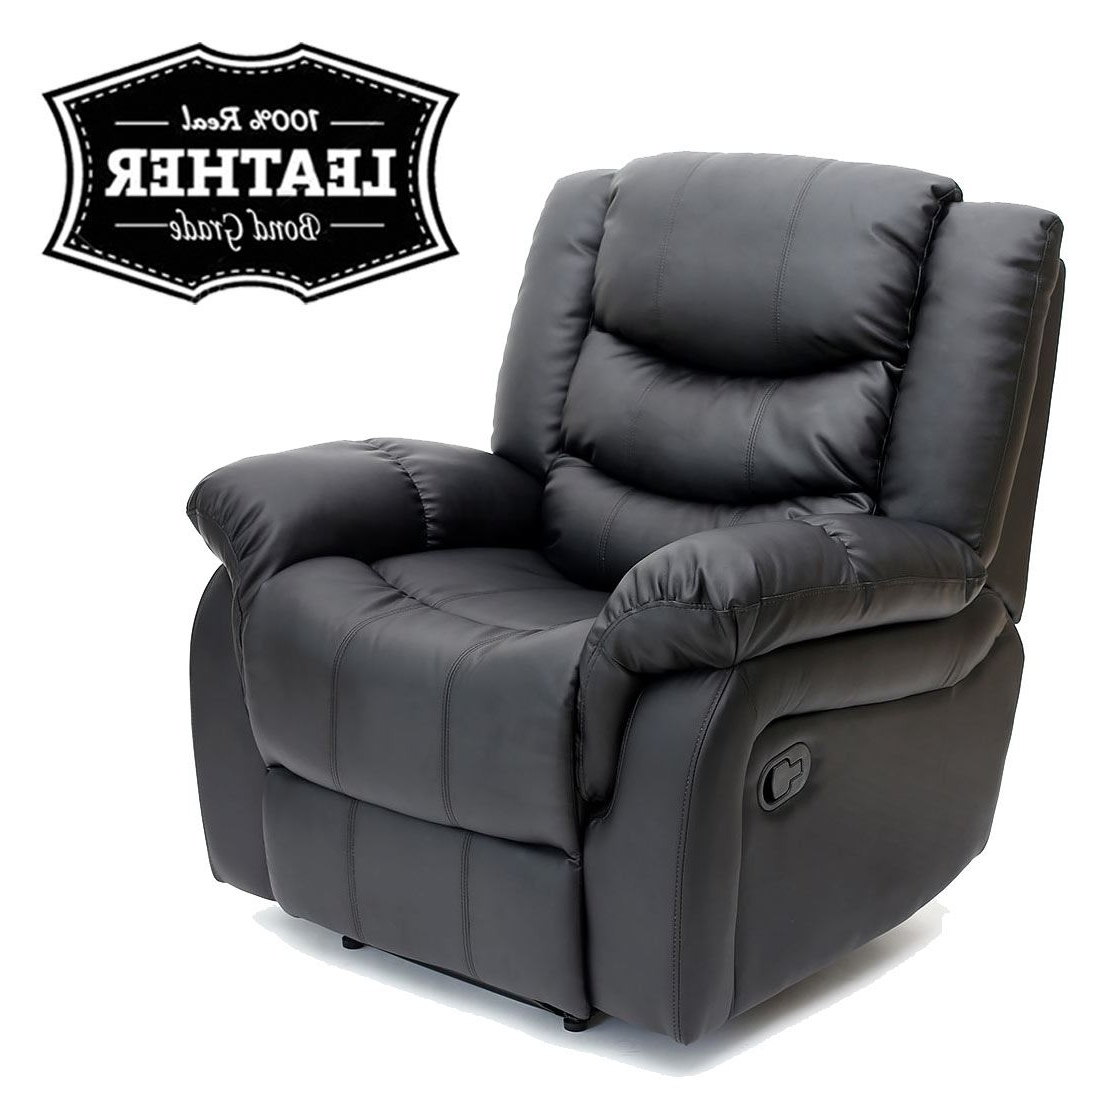 Gaming Sofa Chairs Pertaining To Popular Seattle Leather Recliner Armchair Sofa Home Lounge Chair Reclining (View 7 of 15)